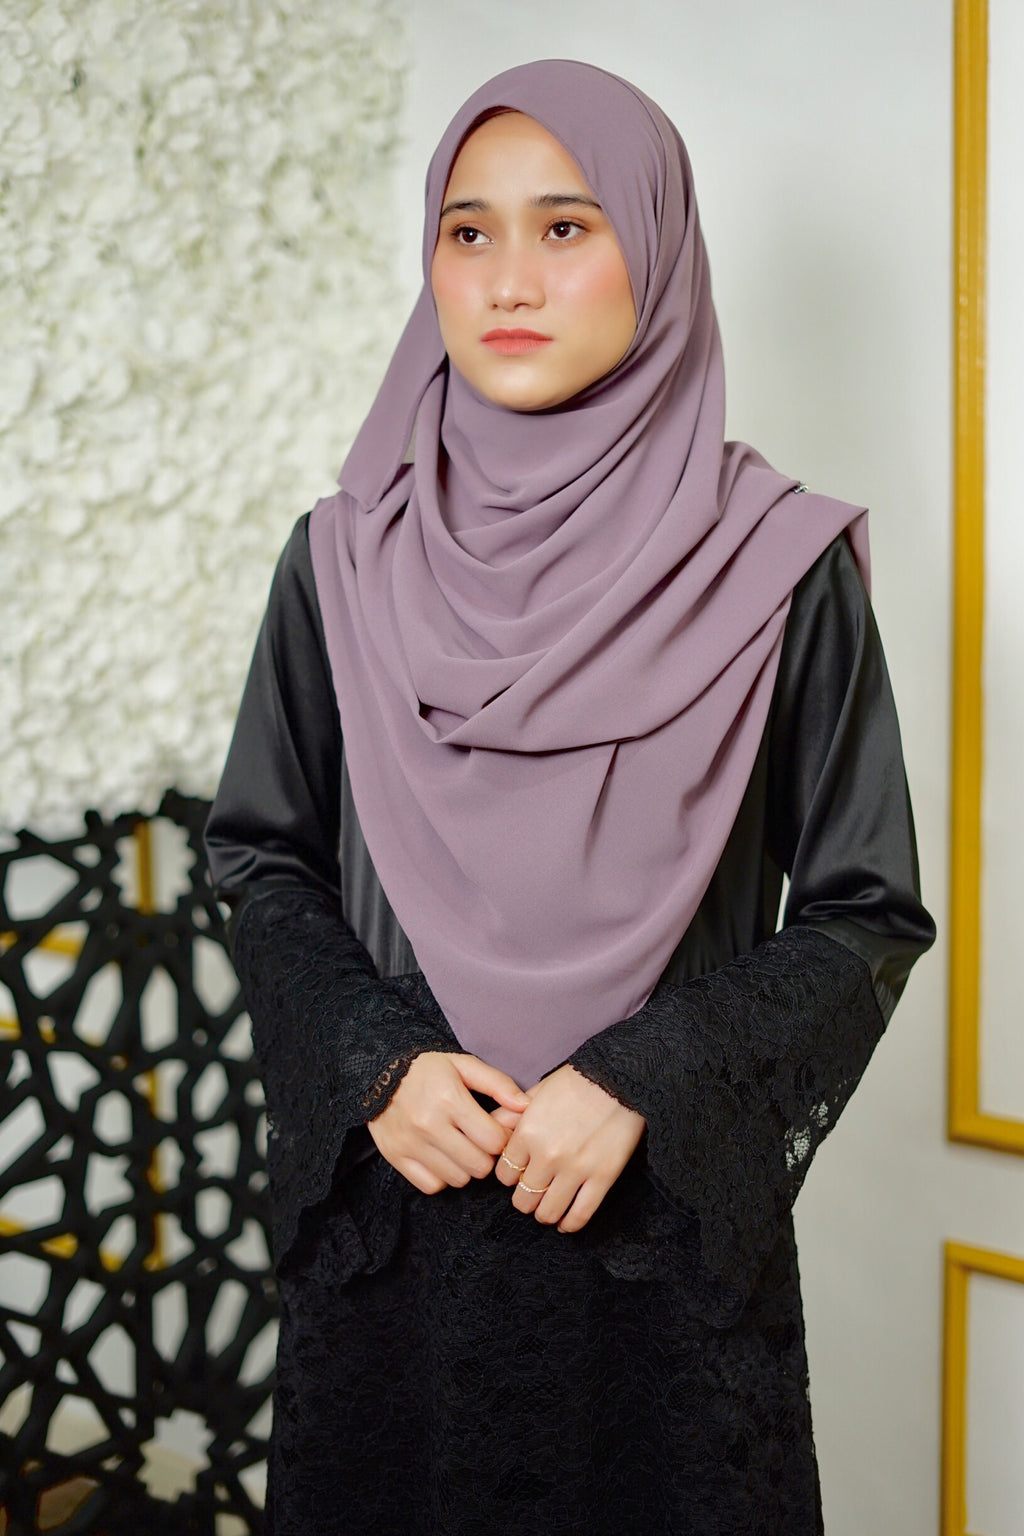 Lily Shawl - Moderate Purple